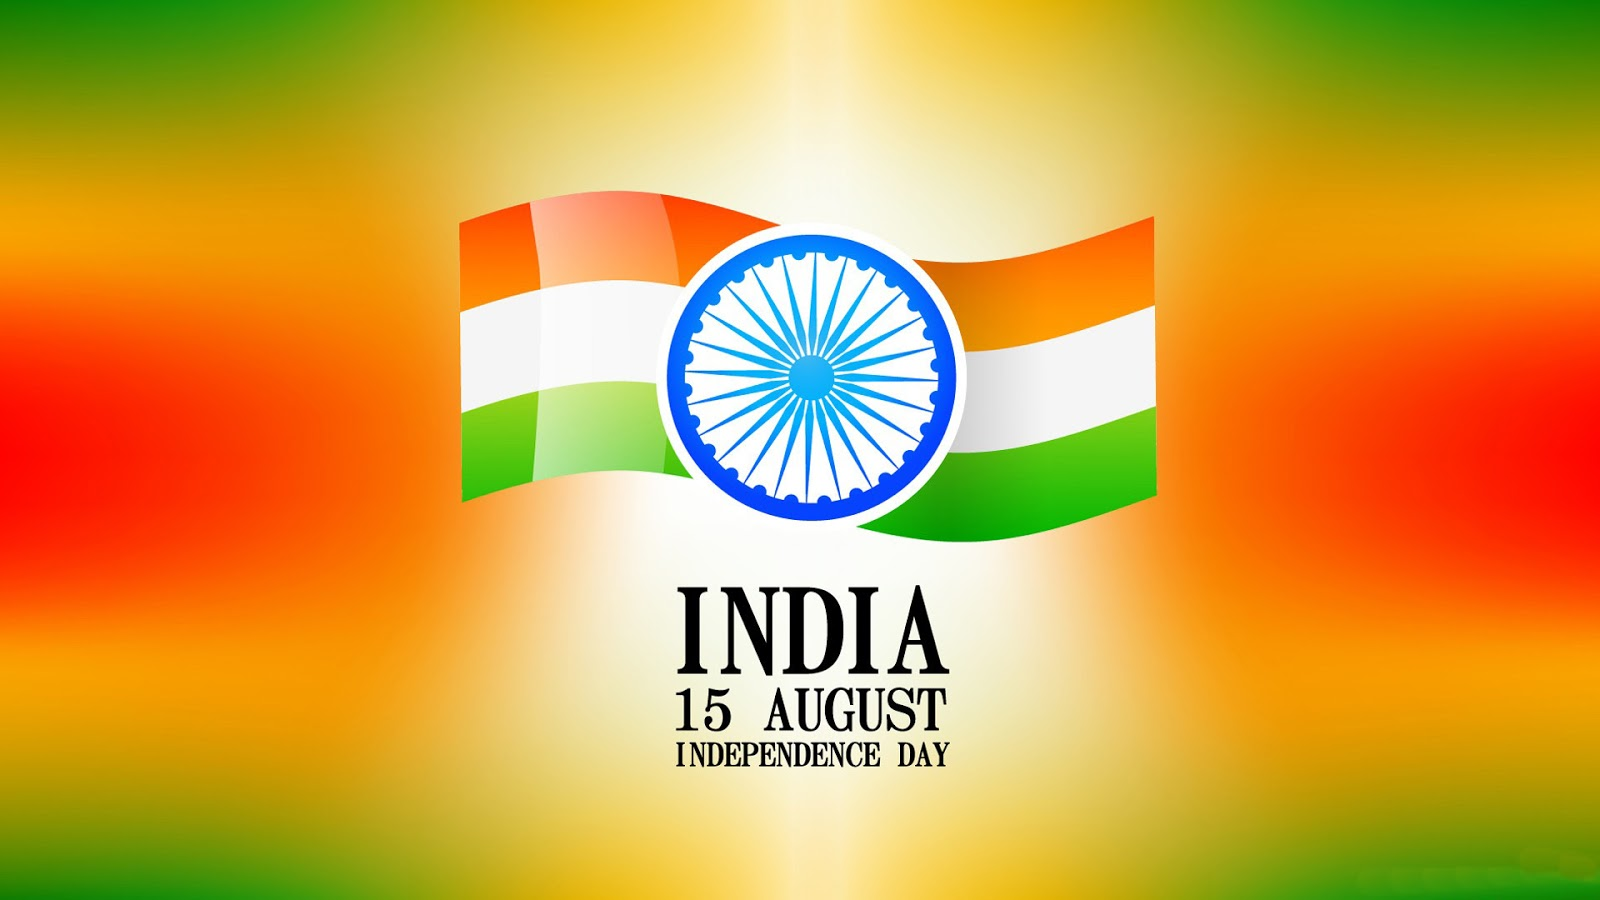 15 August Wishes Images Photos Wallpapers Free Download